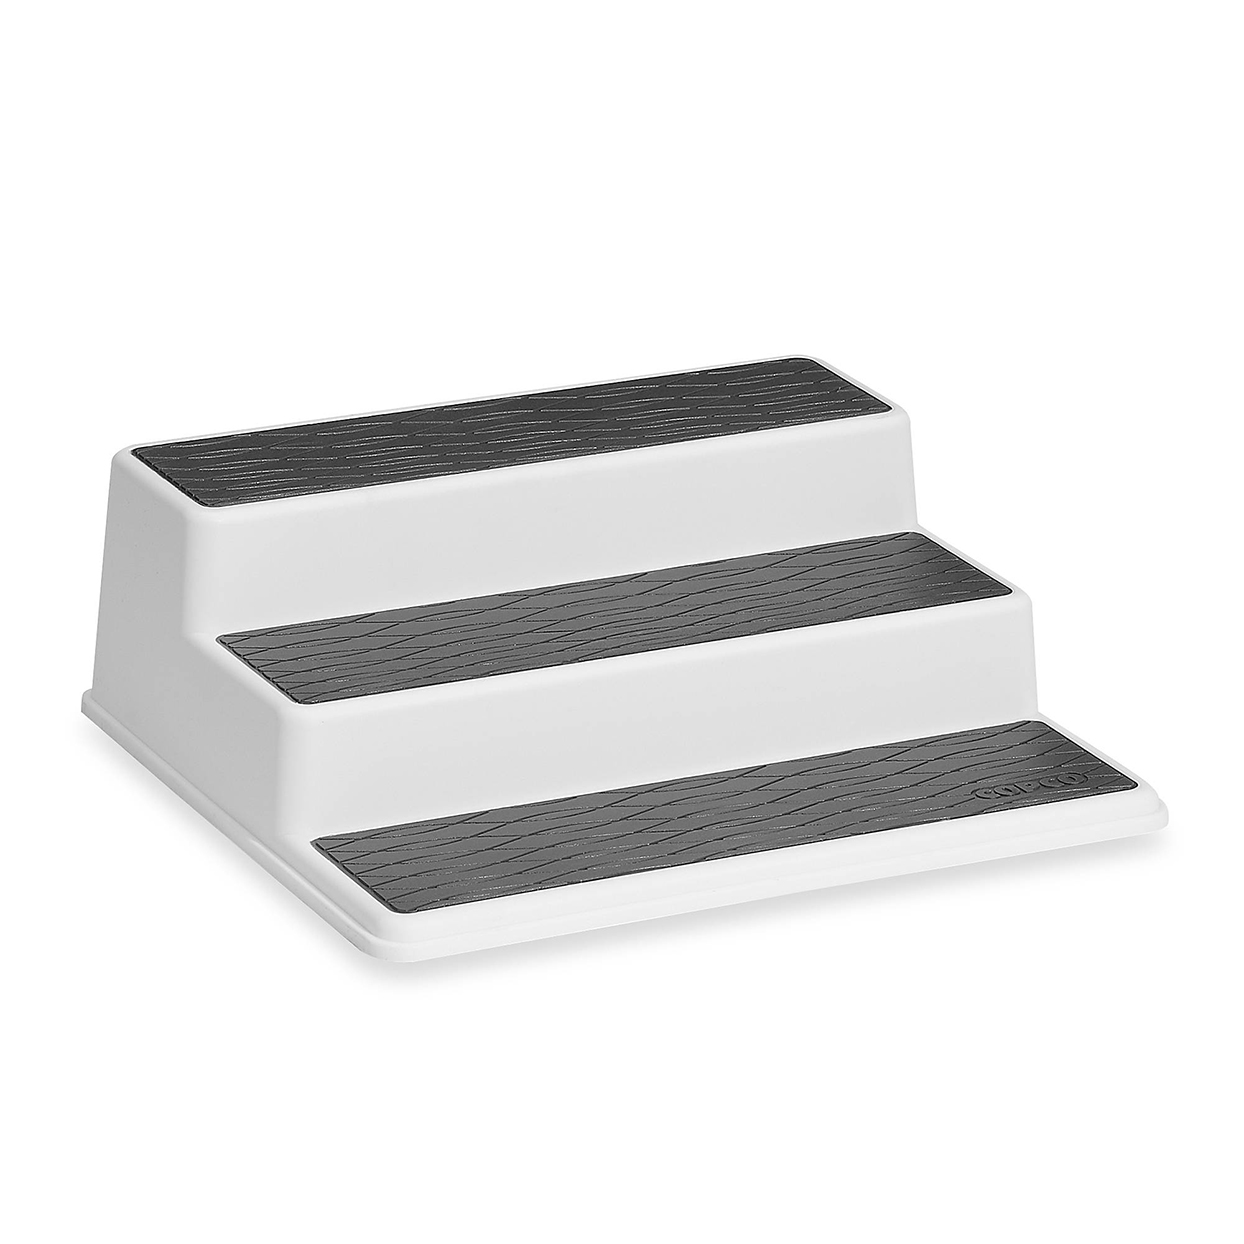 Copco Non-Skid Shelf Organizer